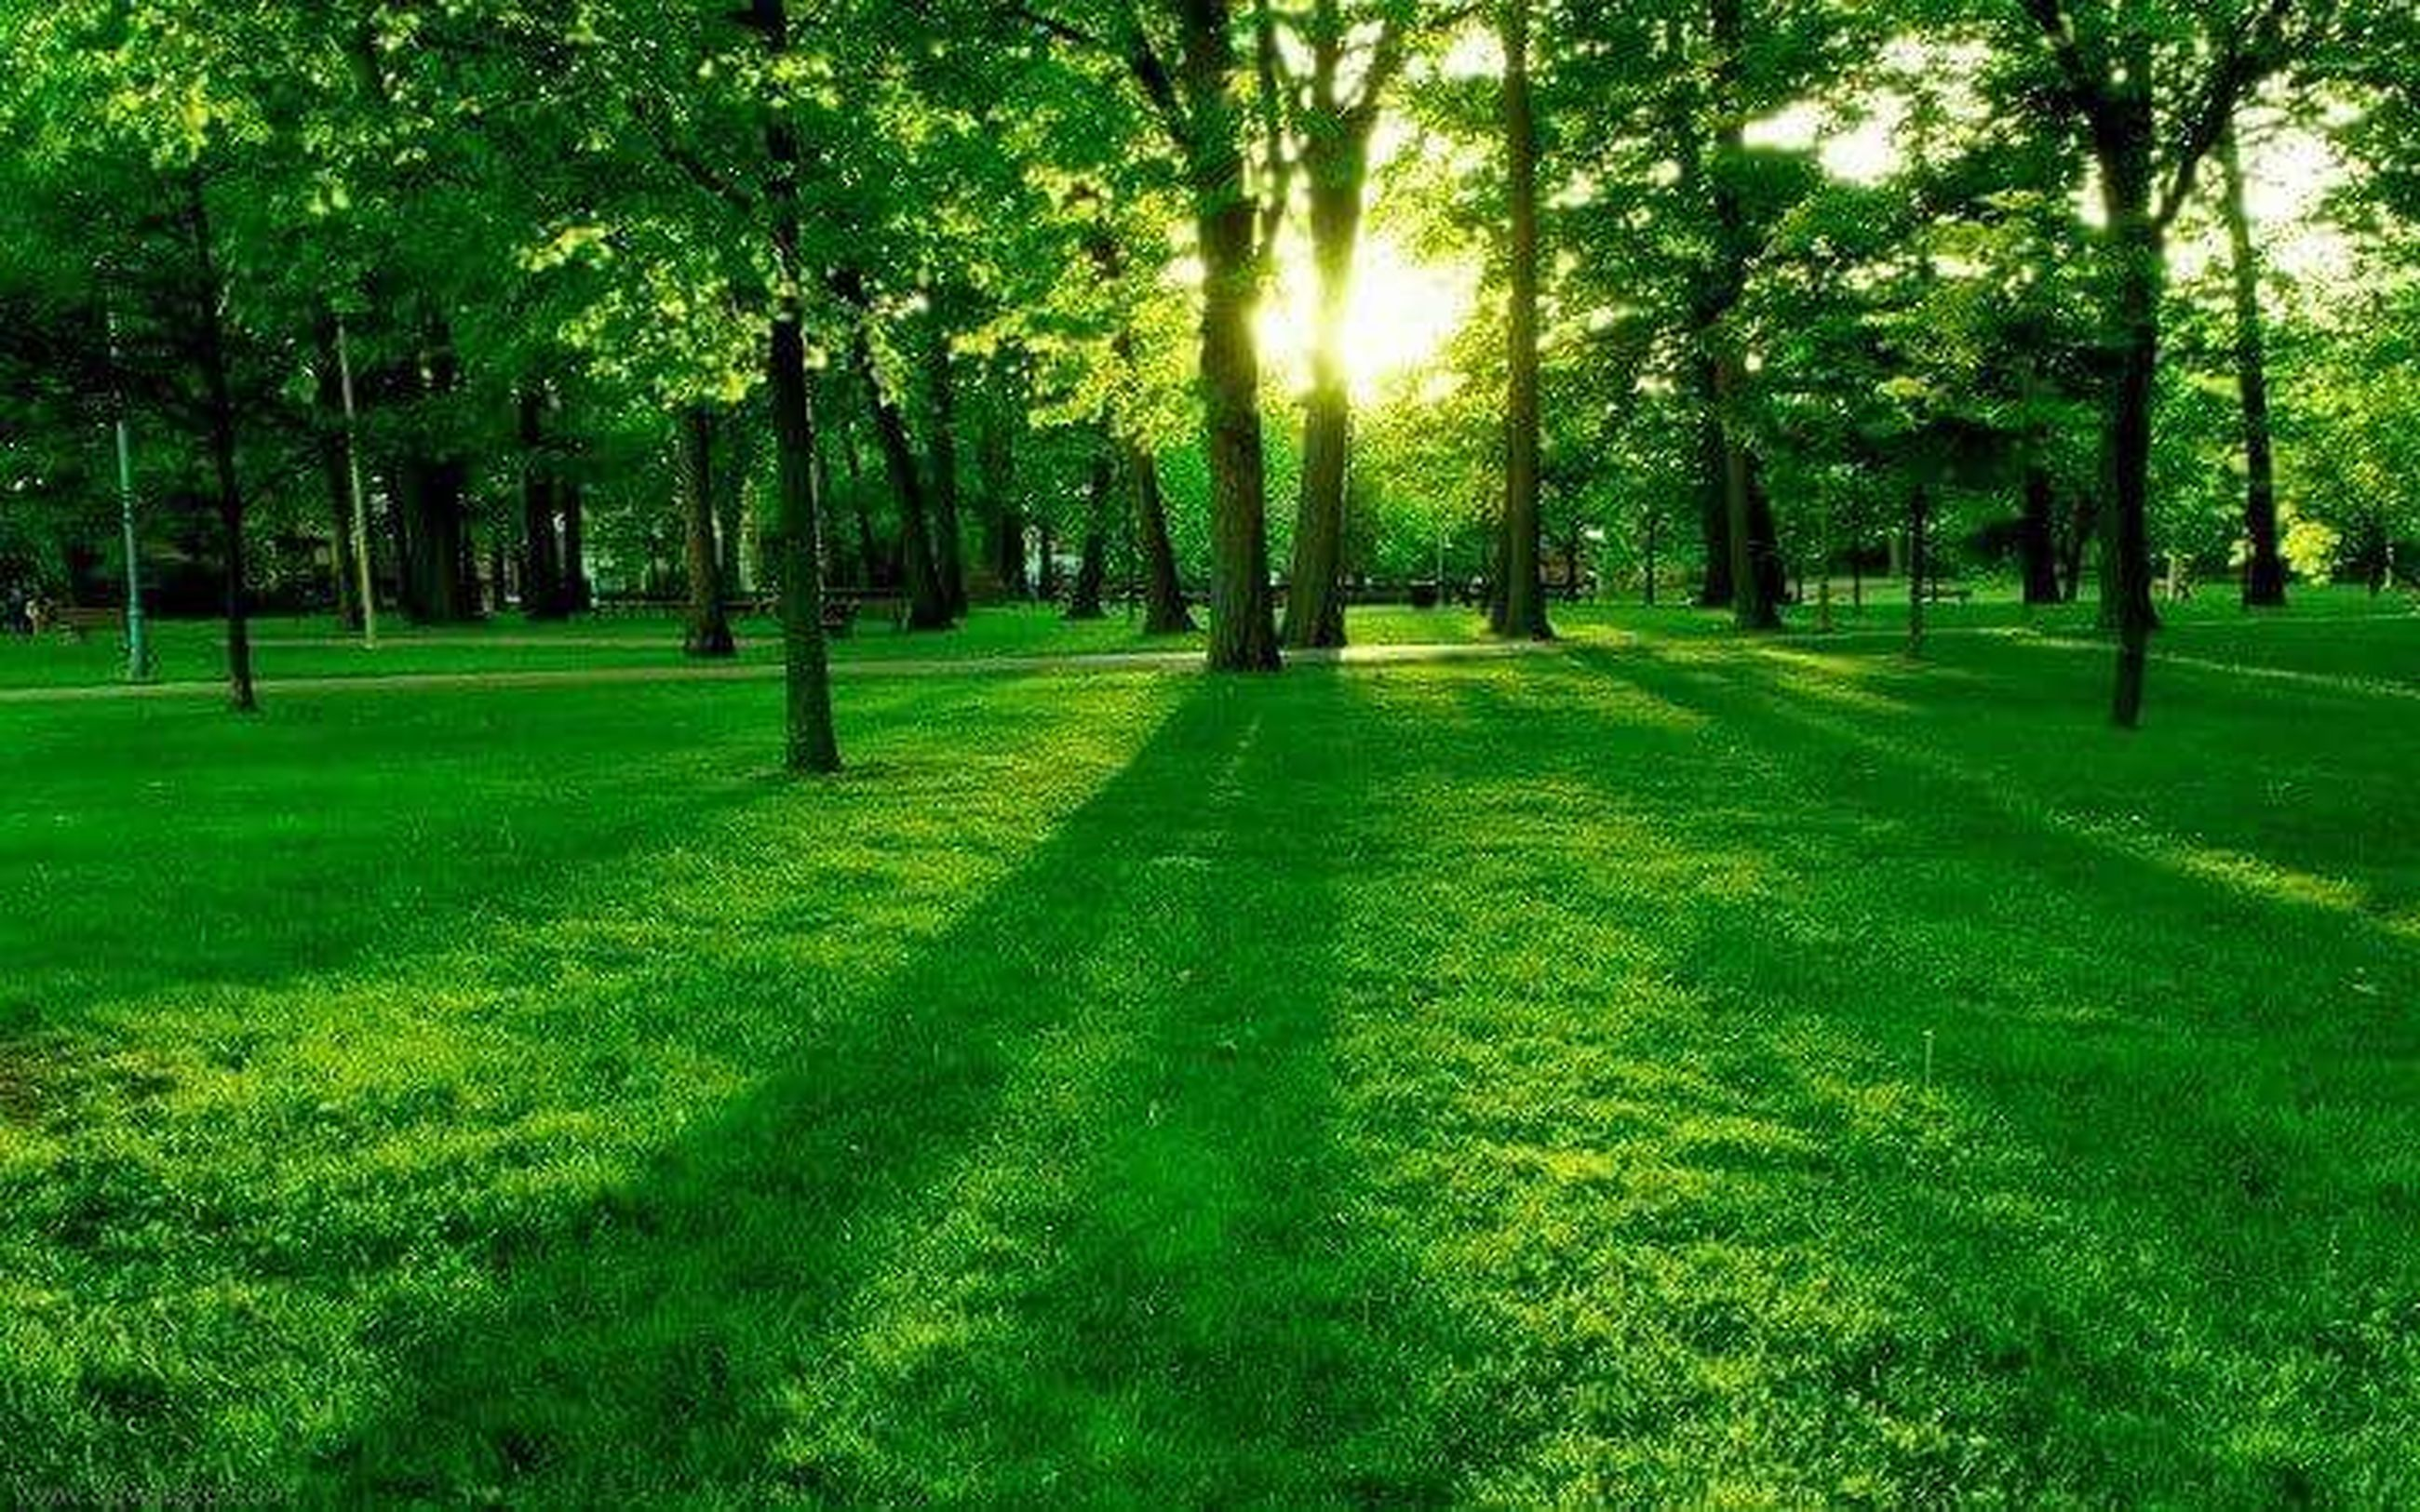 tree, grass, green color, growth, sunlight, tranquility, grassy, tranquil scene, nature, beauty in nature, shadow, field, park - man made space, tree trunk, scenics, landscape, sunbeam, lawn, sun, park